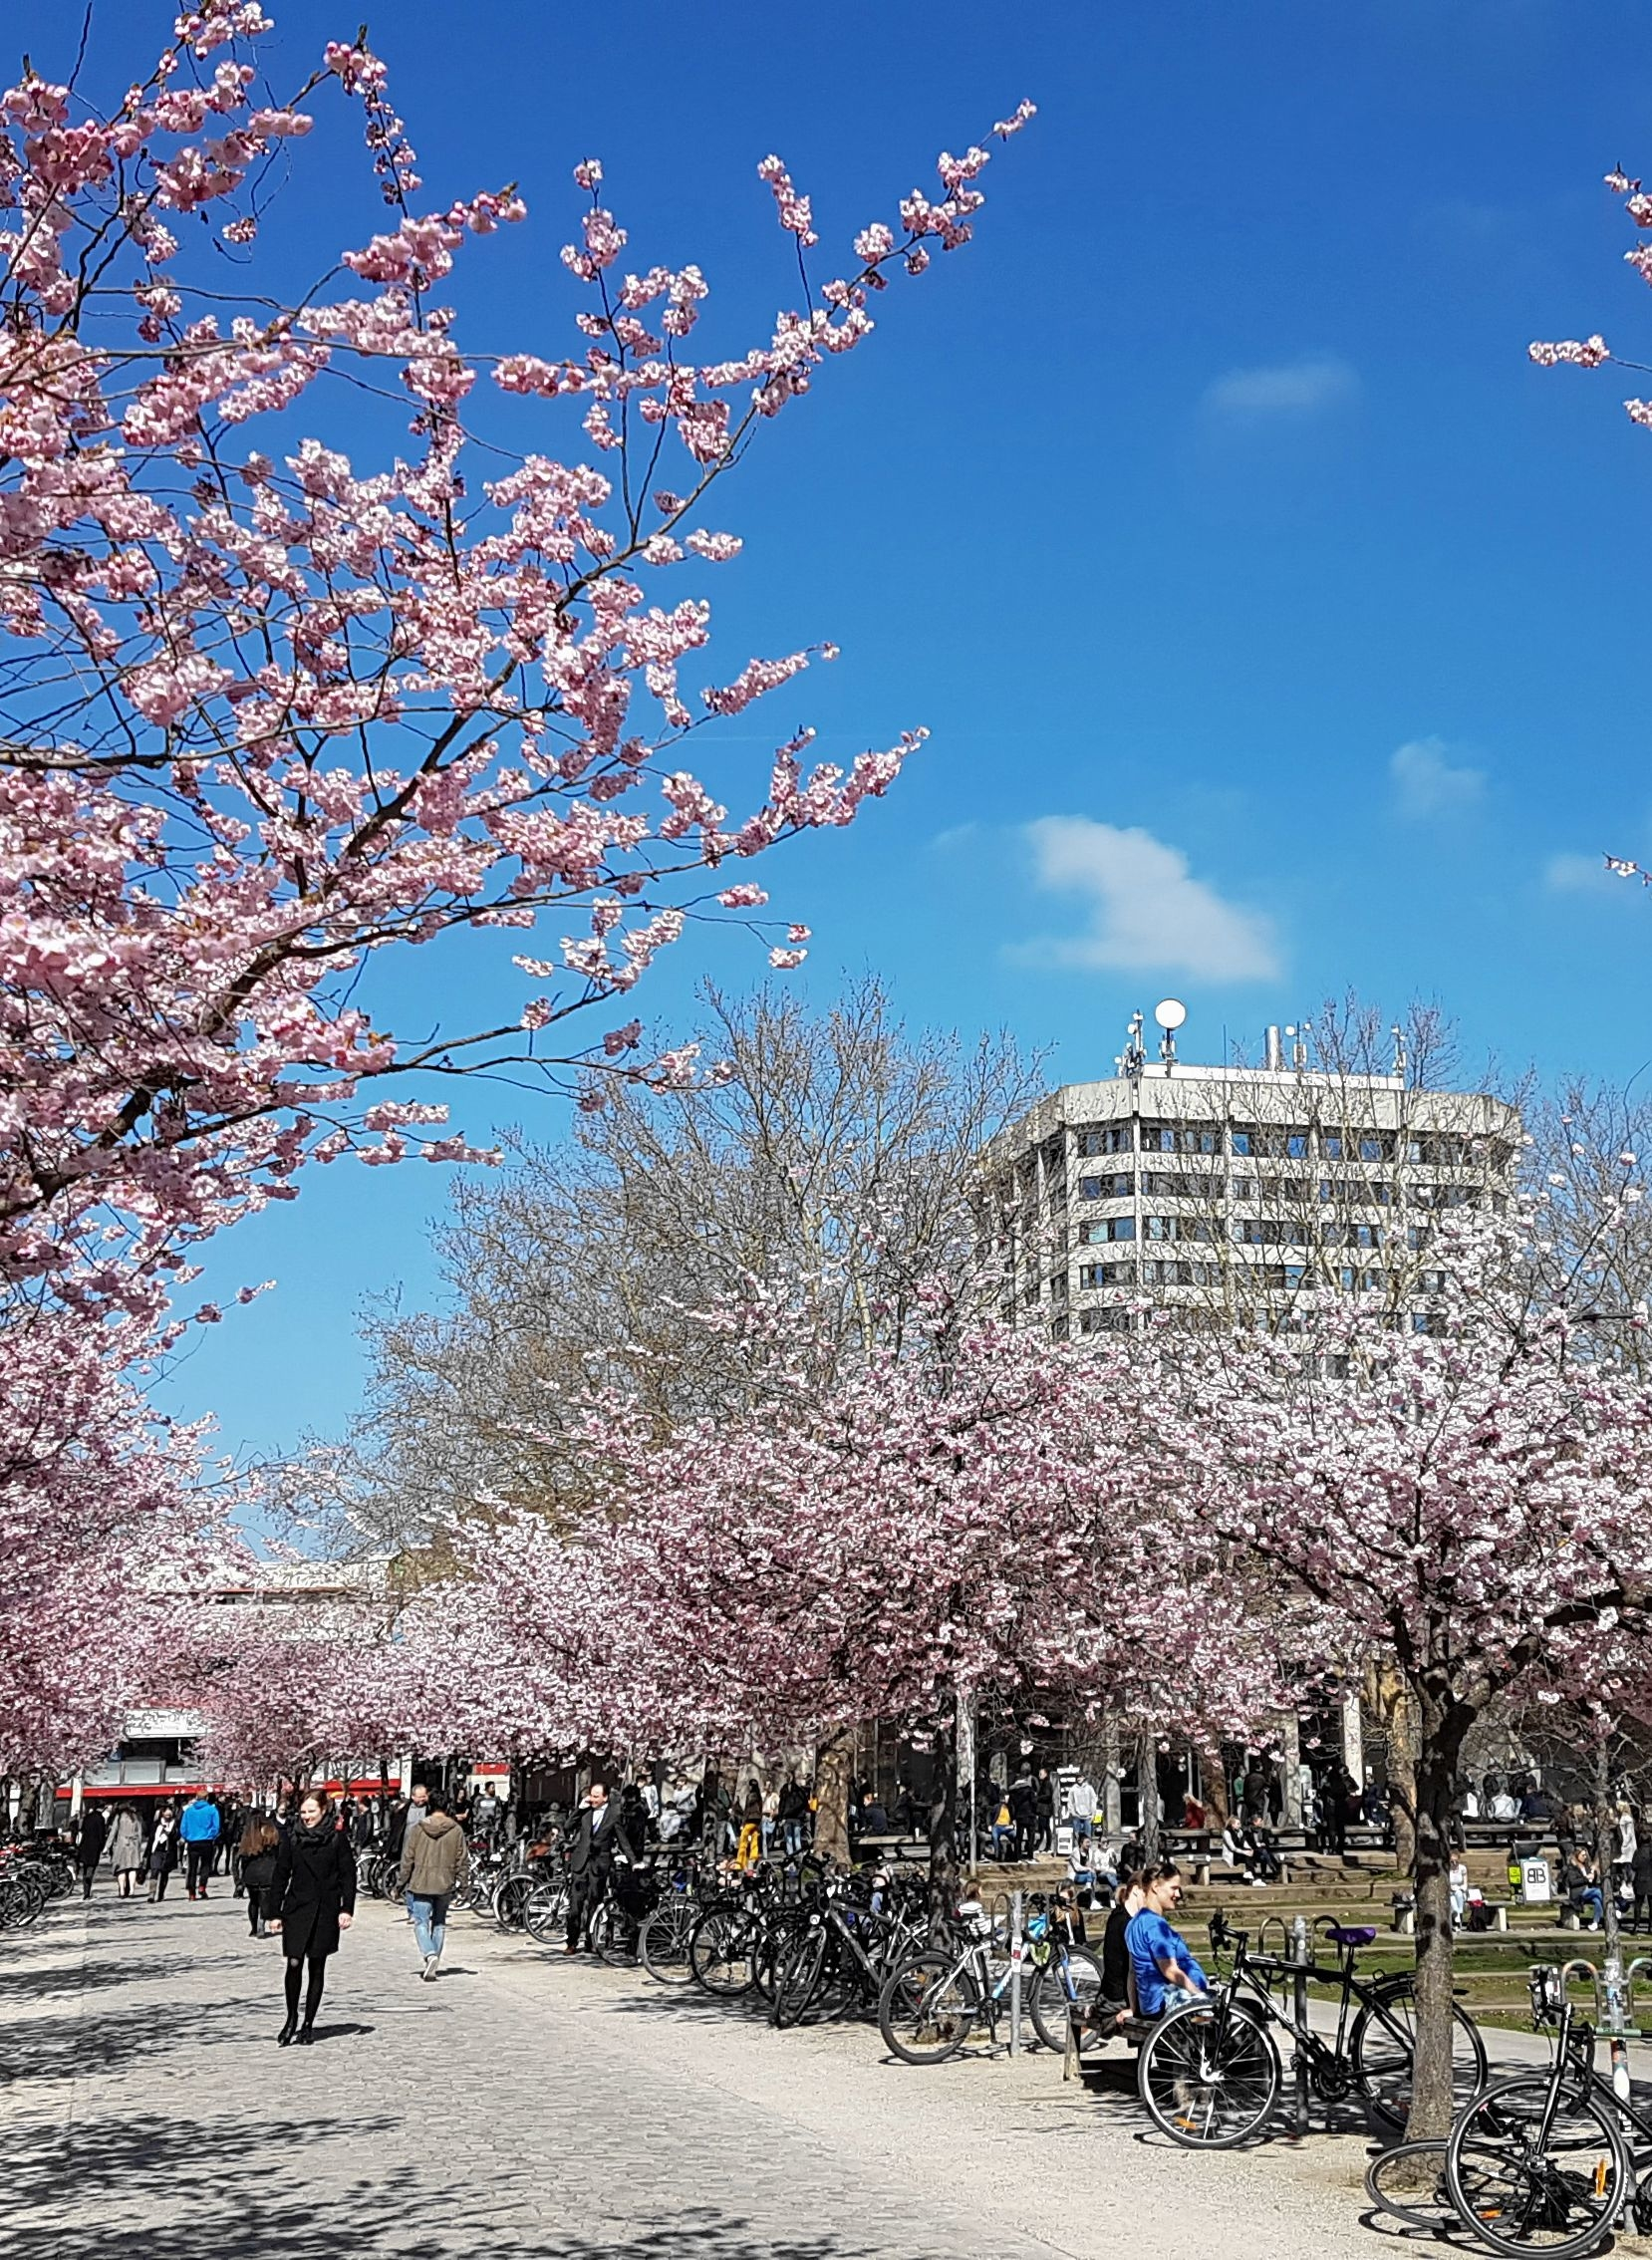 Cherry Blossoms and Blauer Turm 2019